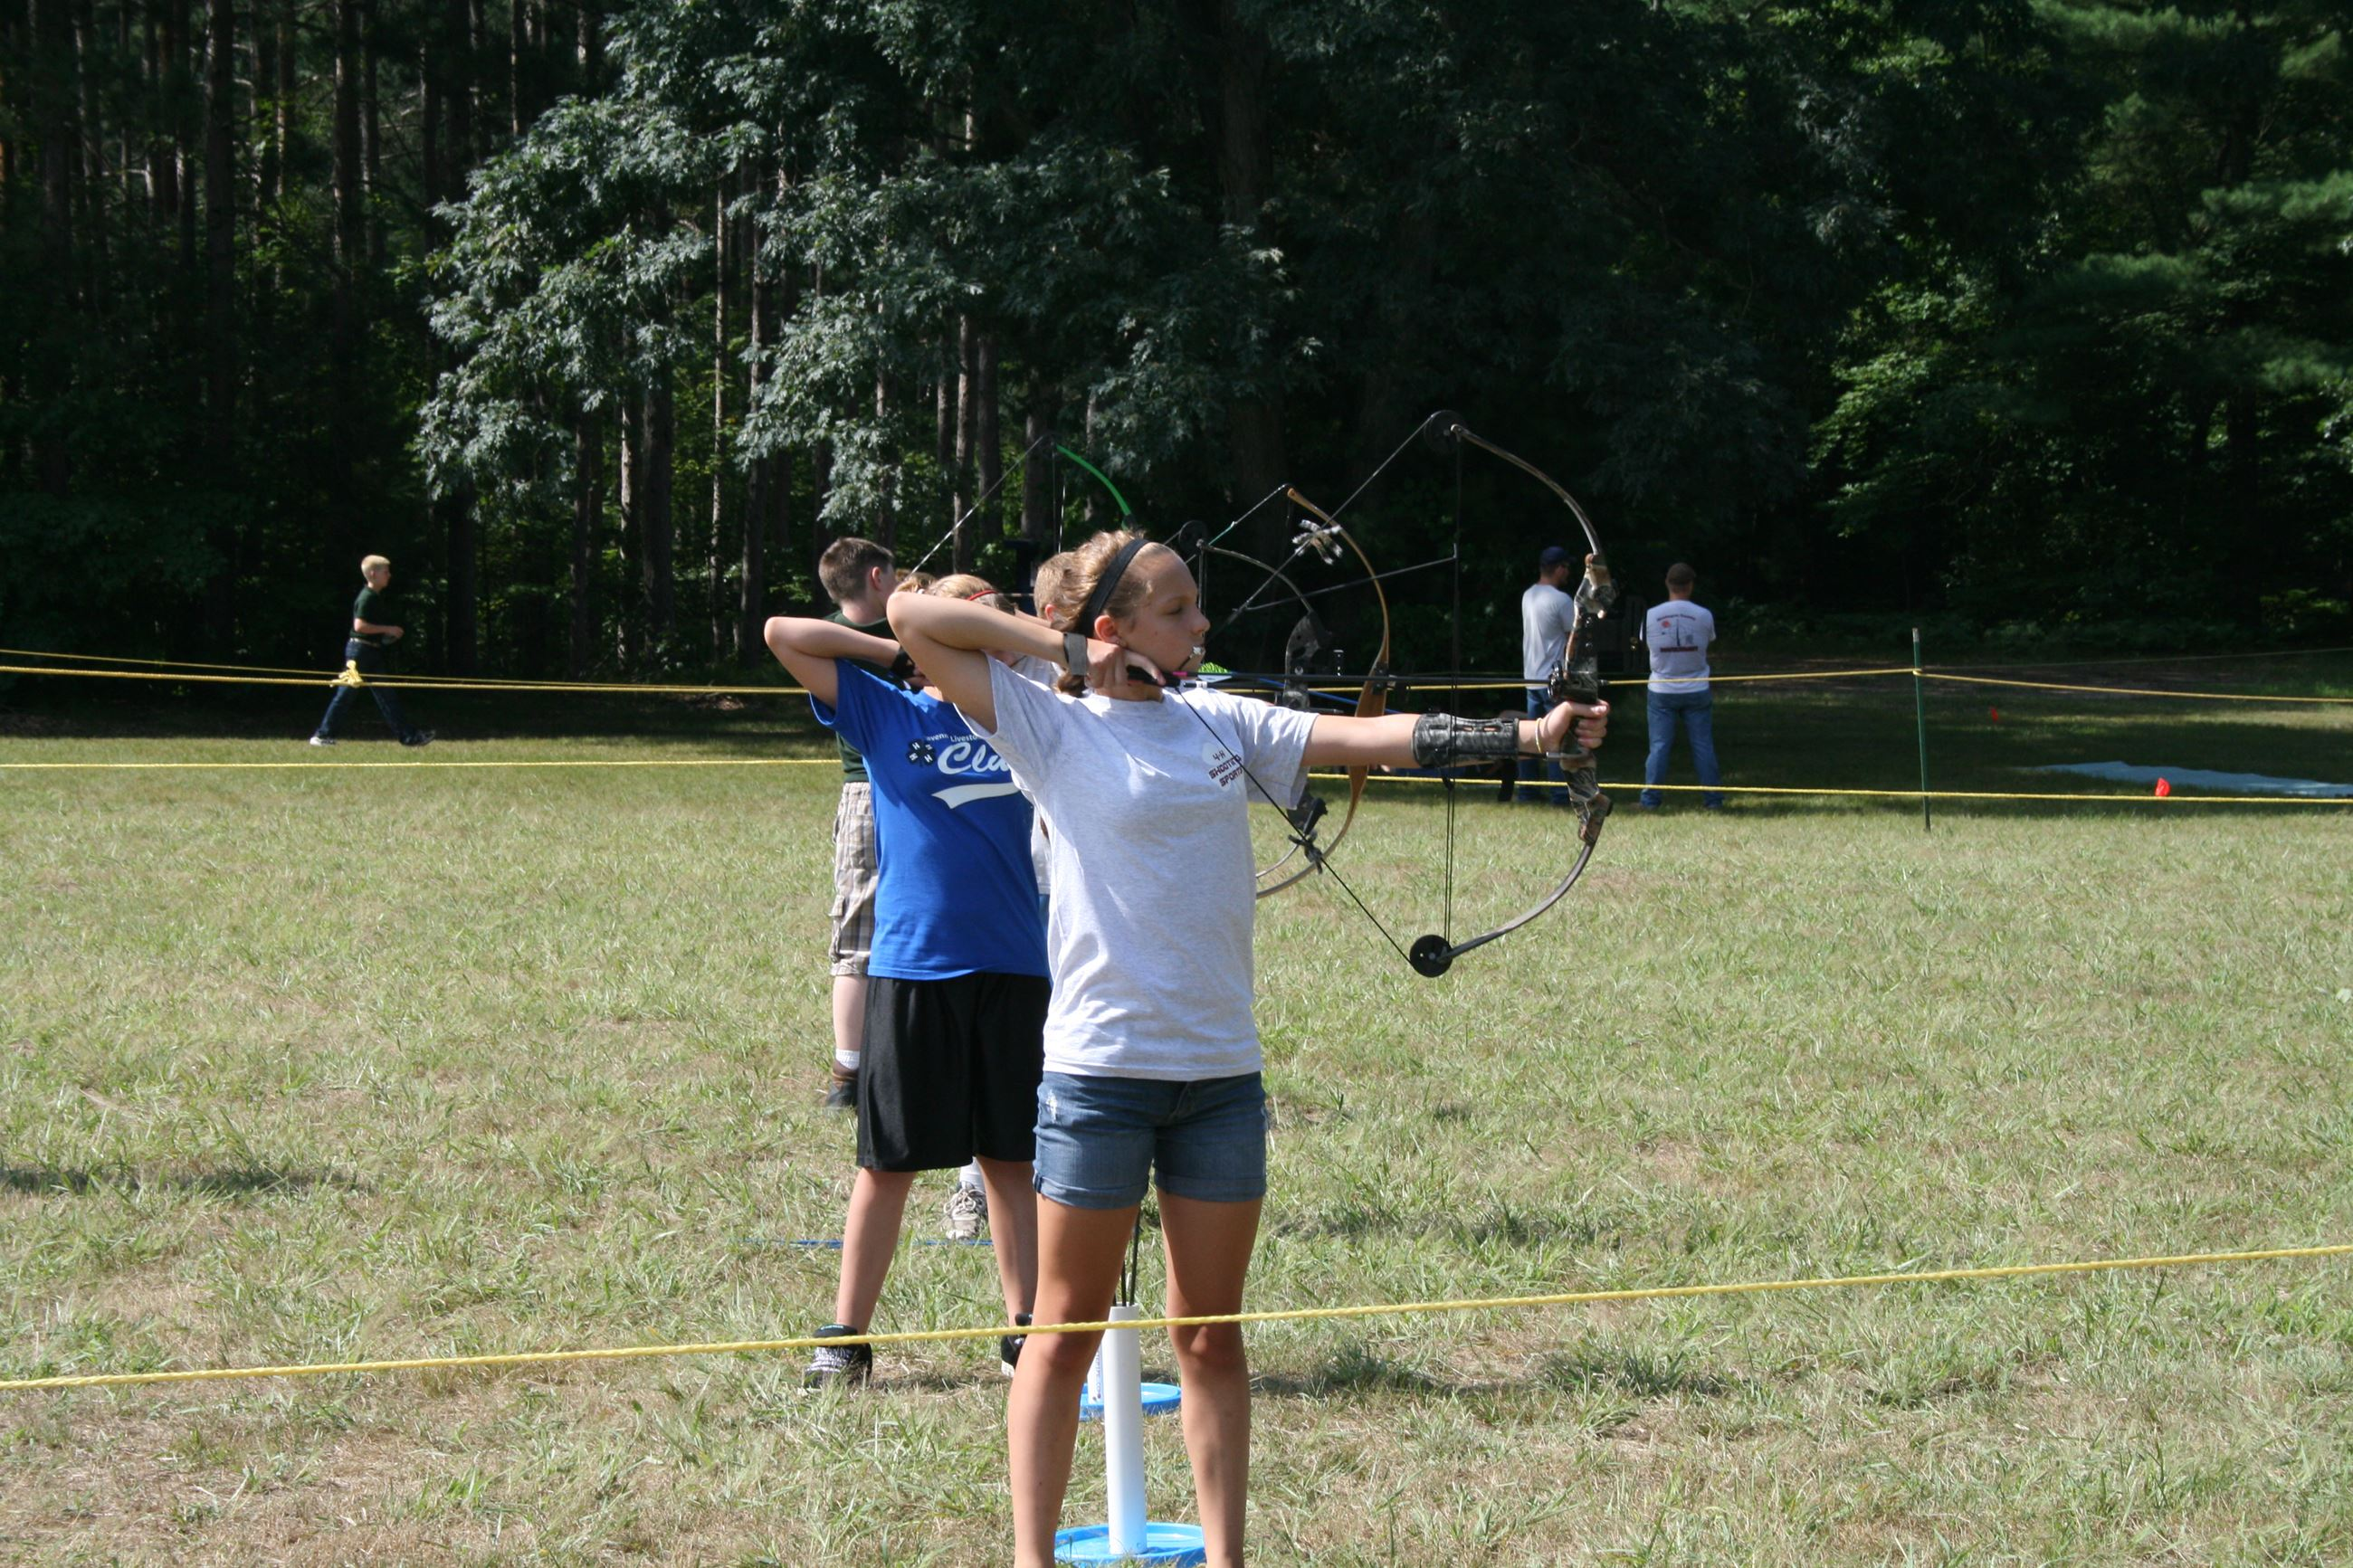 Youth participating in archery competition